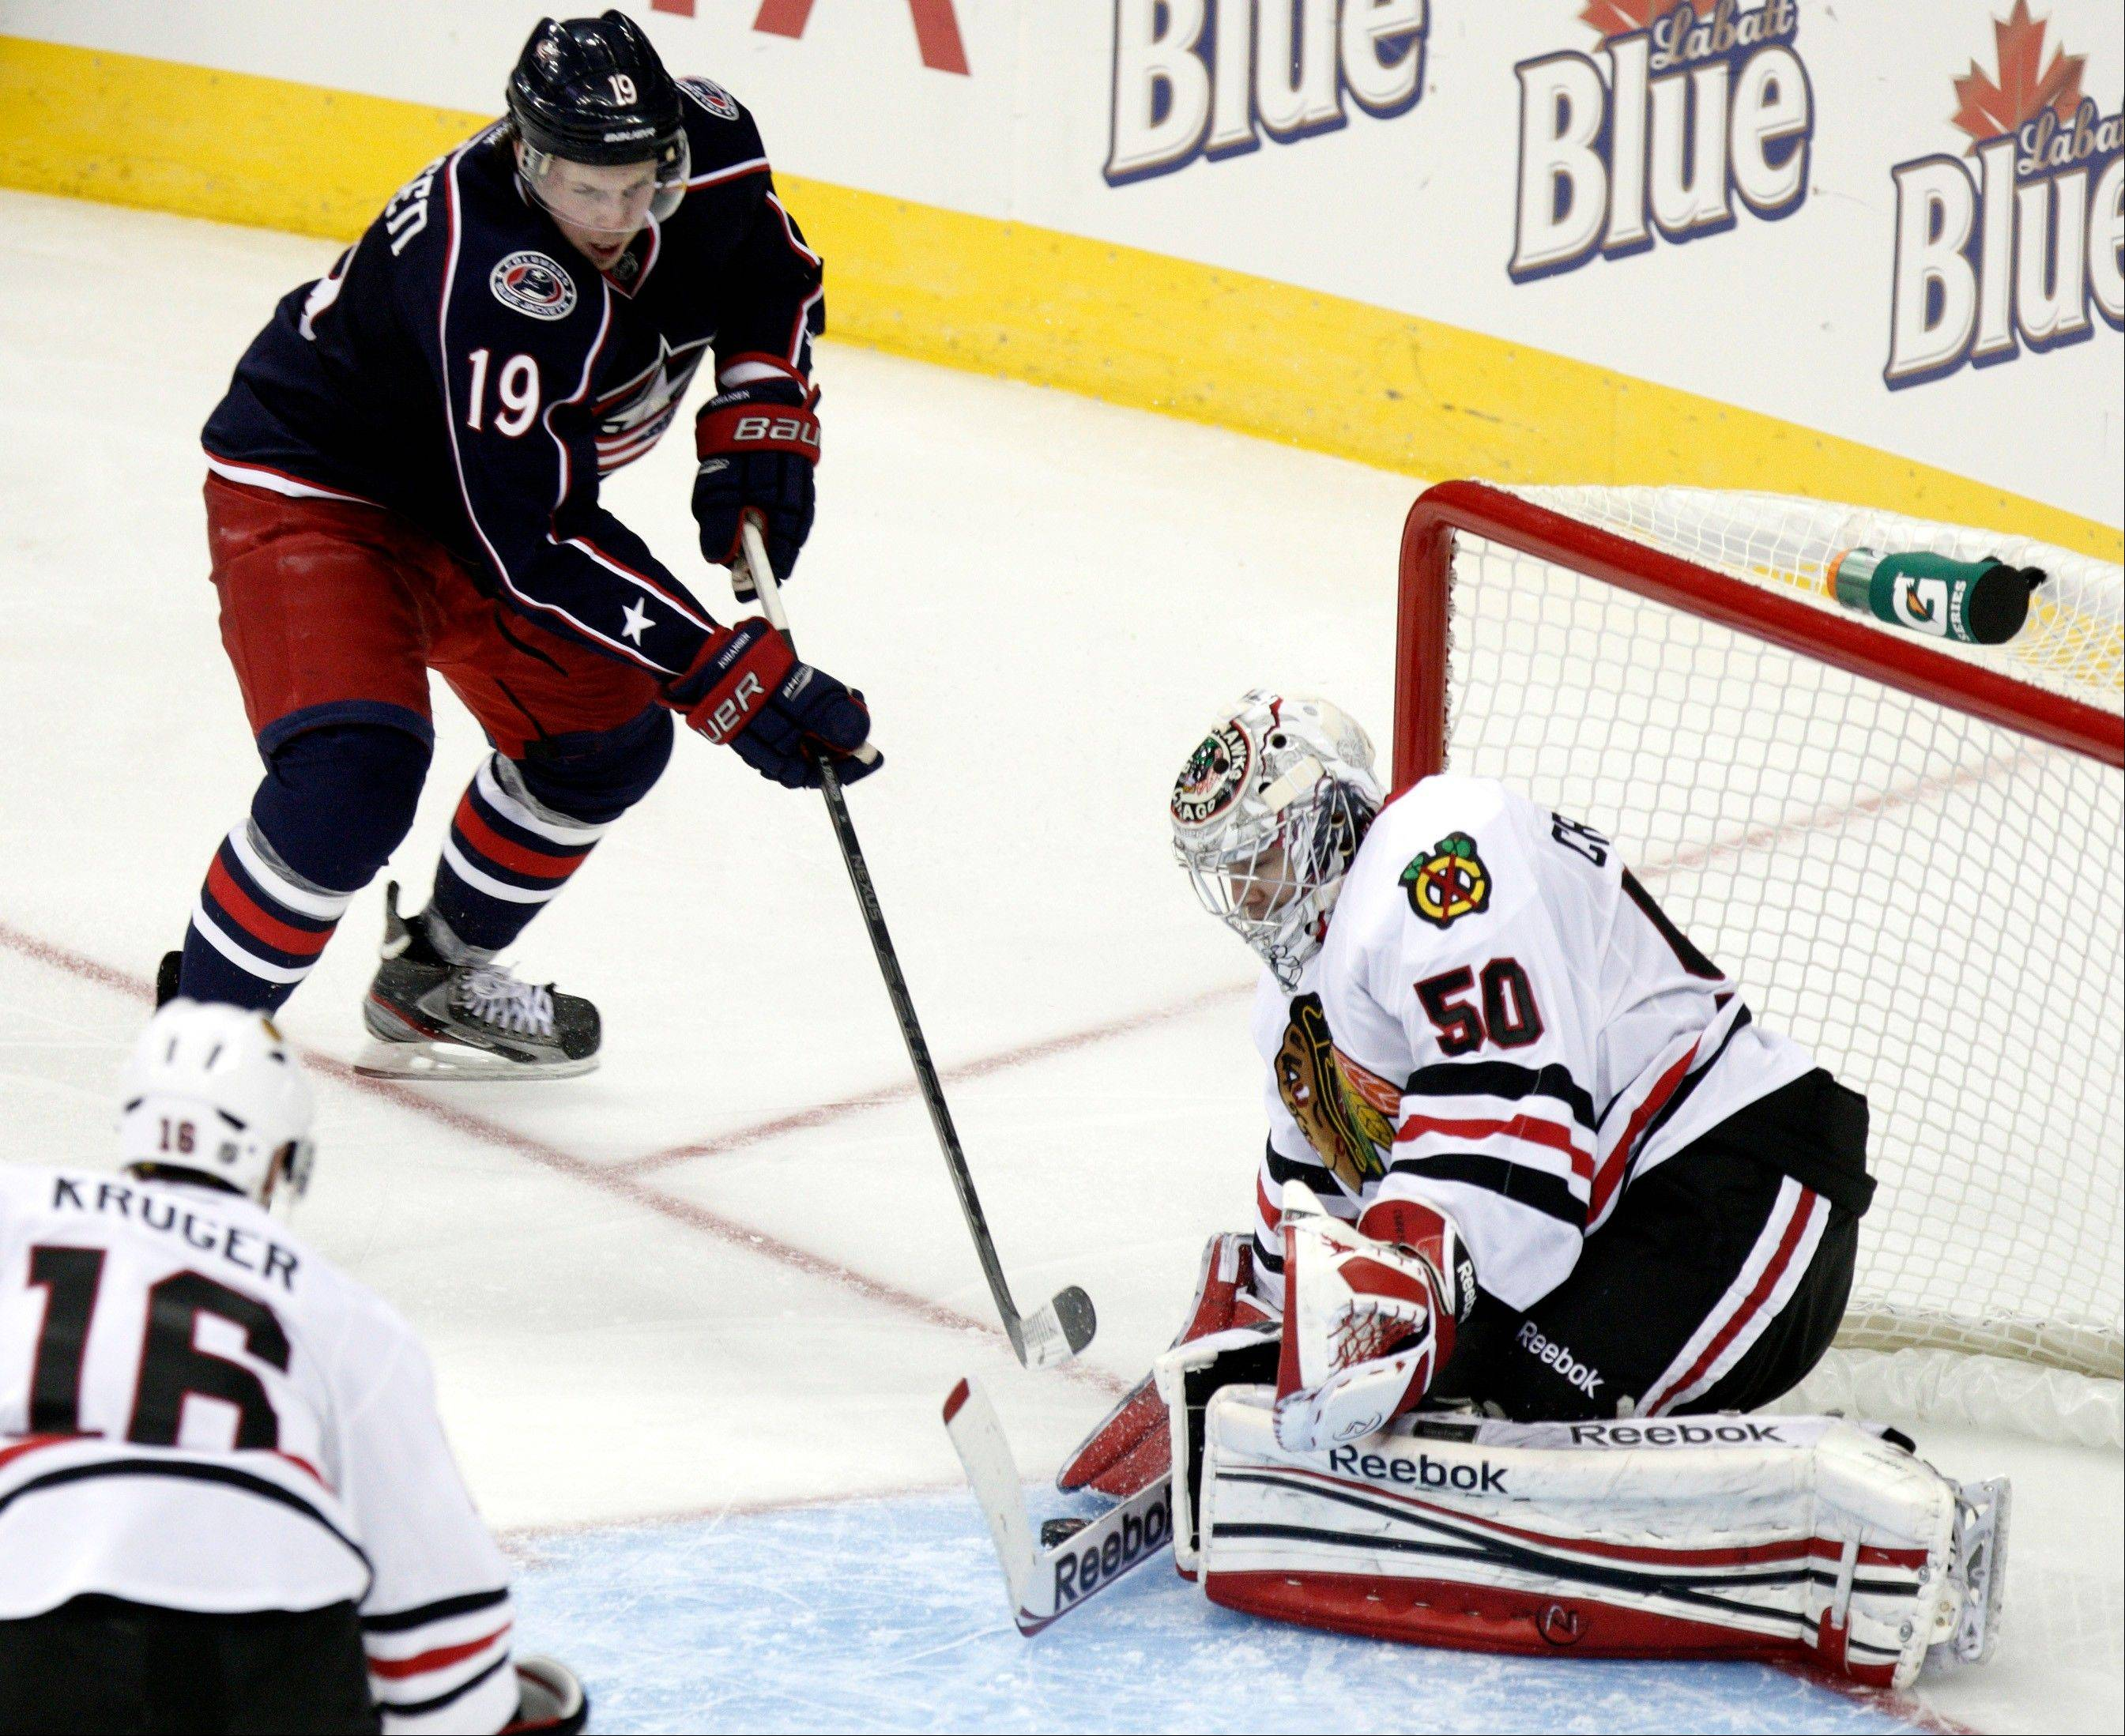 Chicago Blackhawks goalie Corey Crawford stops a shot against Columbus Blue Jackets' Ryan Johansen in the third period of an NHL hockey game in Columbus, Ohio, Saturday, Jan. 26, 2013. Chicago won 3-2. (AP Photo/Paul Vernon)